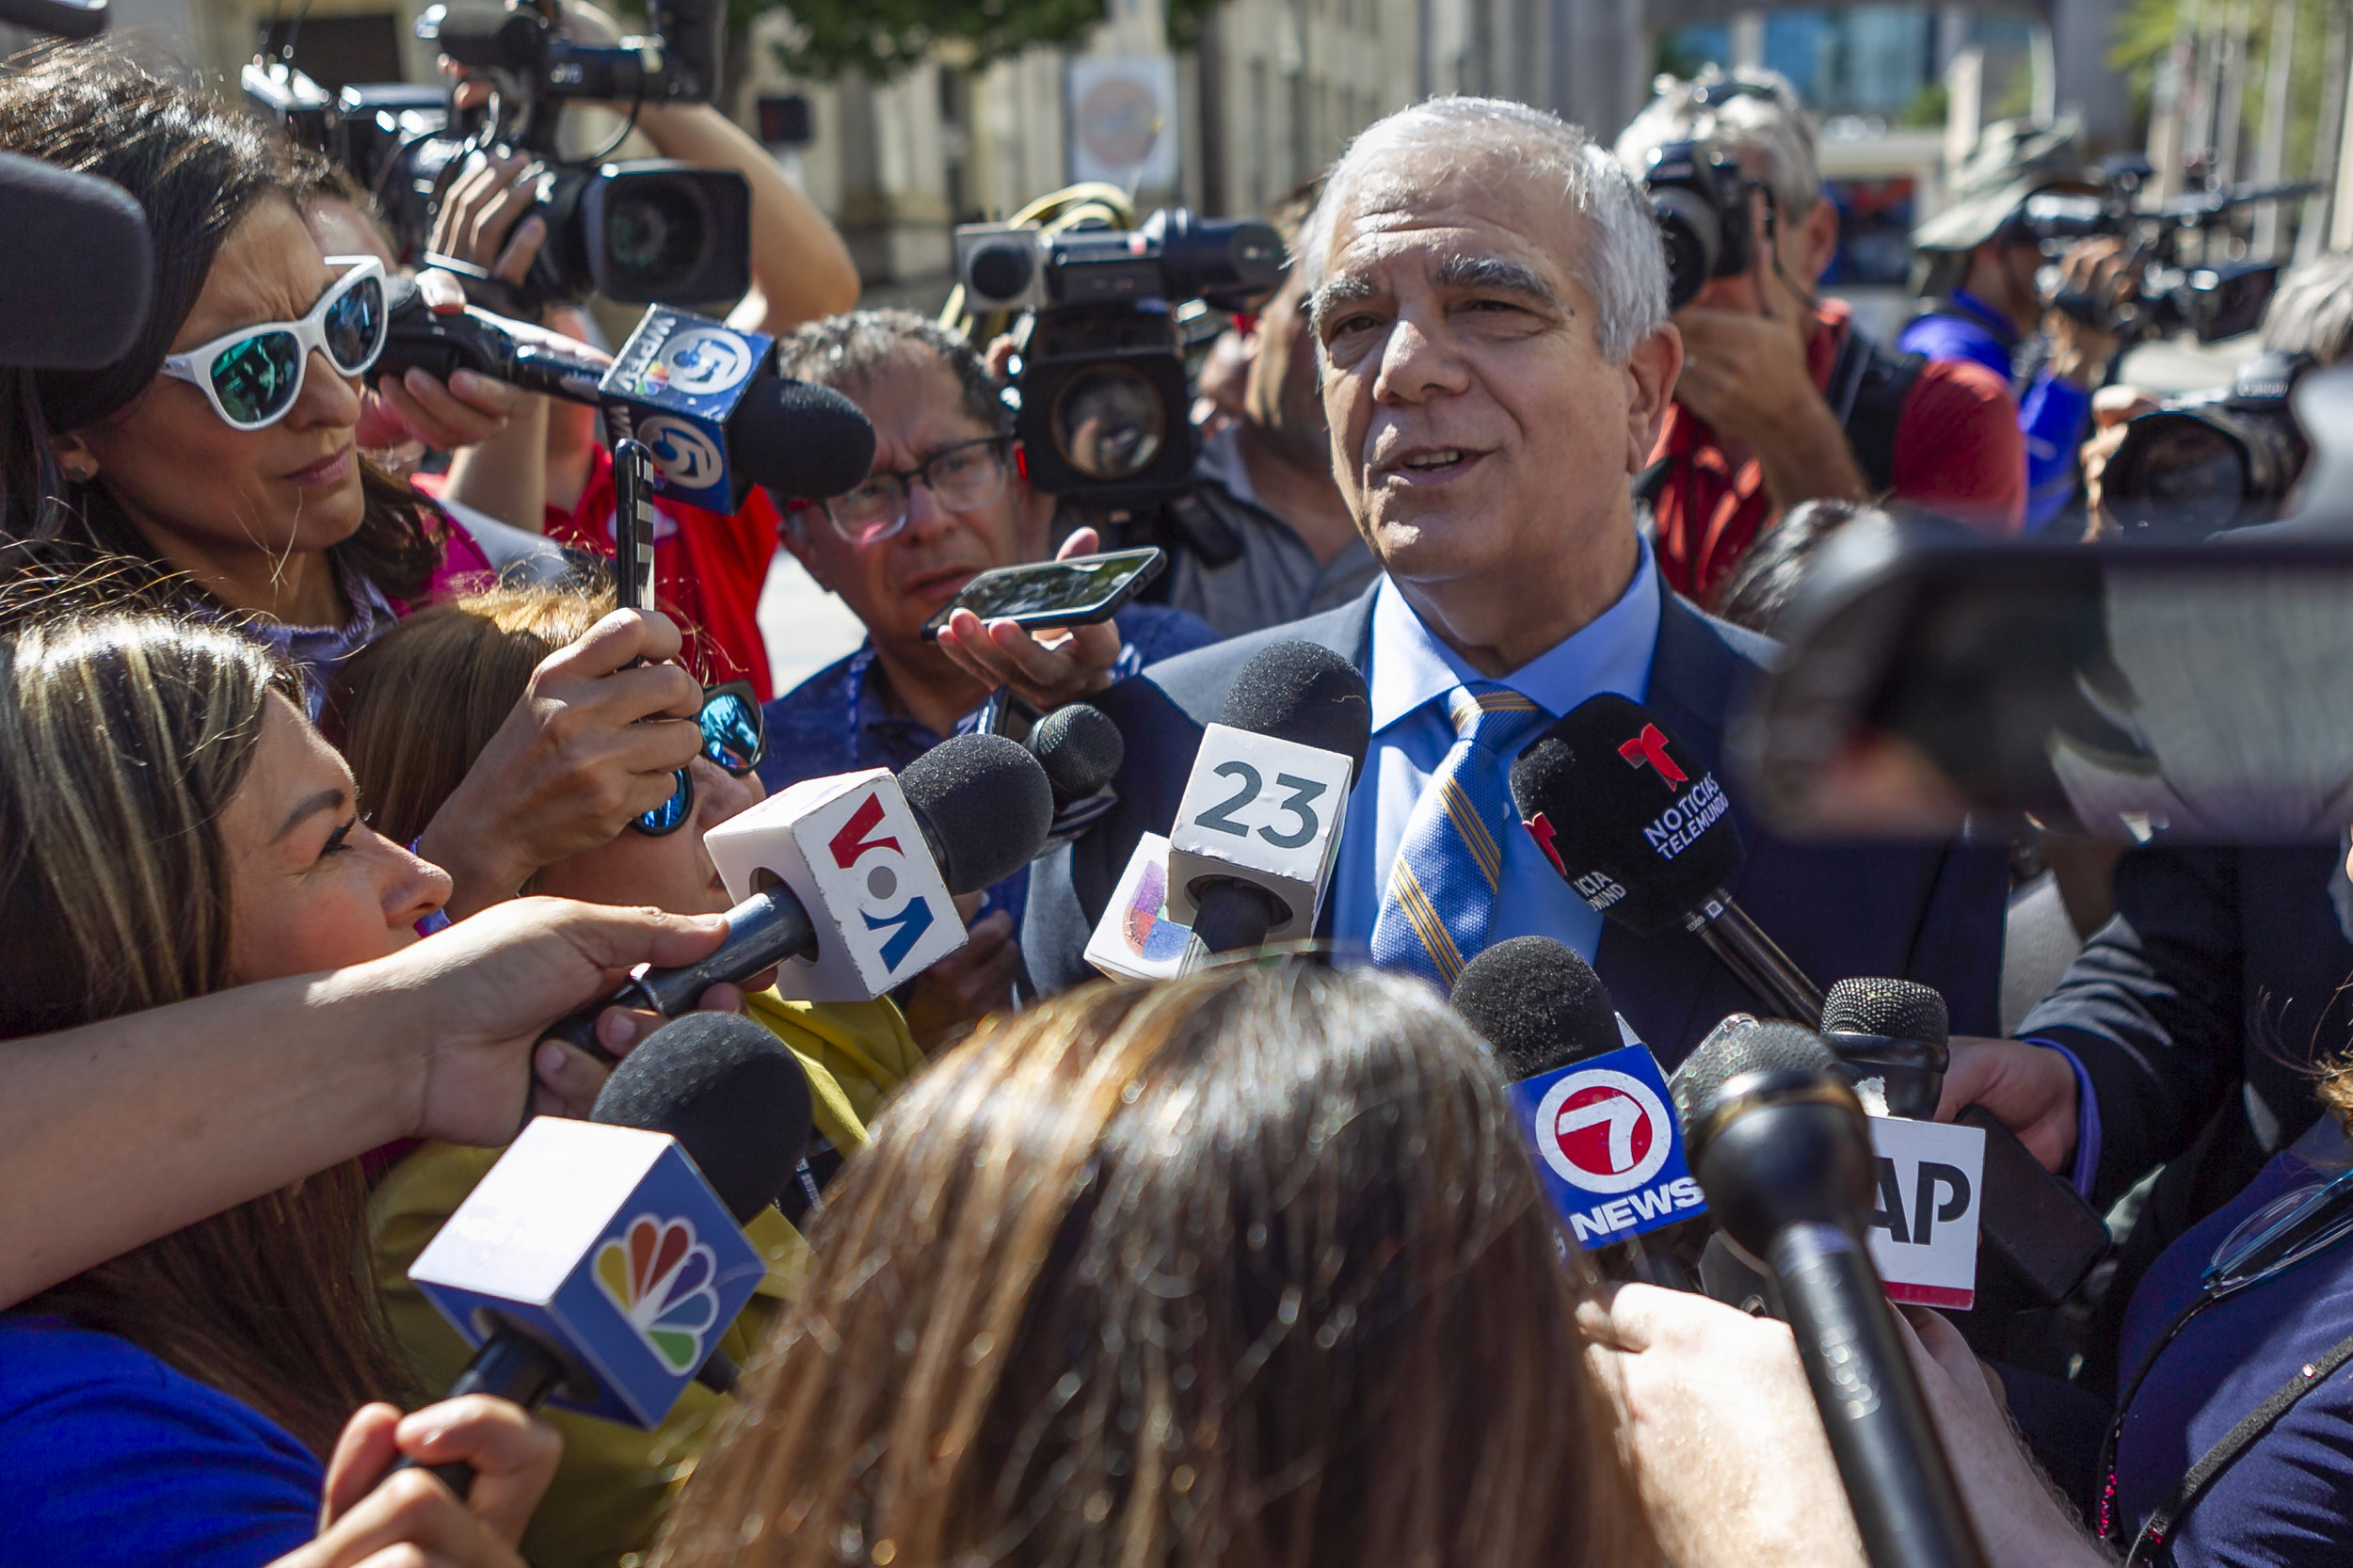 Attorney Daniel Aaronson talks to the media after attending a hearing for his client, Cesar Sayoc, at the Federal District Court for the Southern District of Florida in downtown Miami on Monday, October 29, 2018.